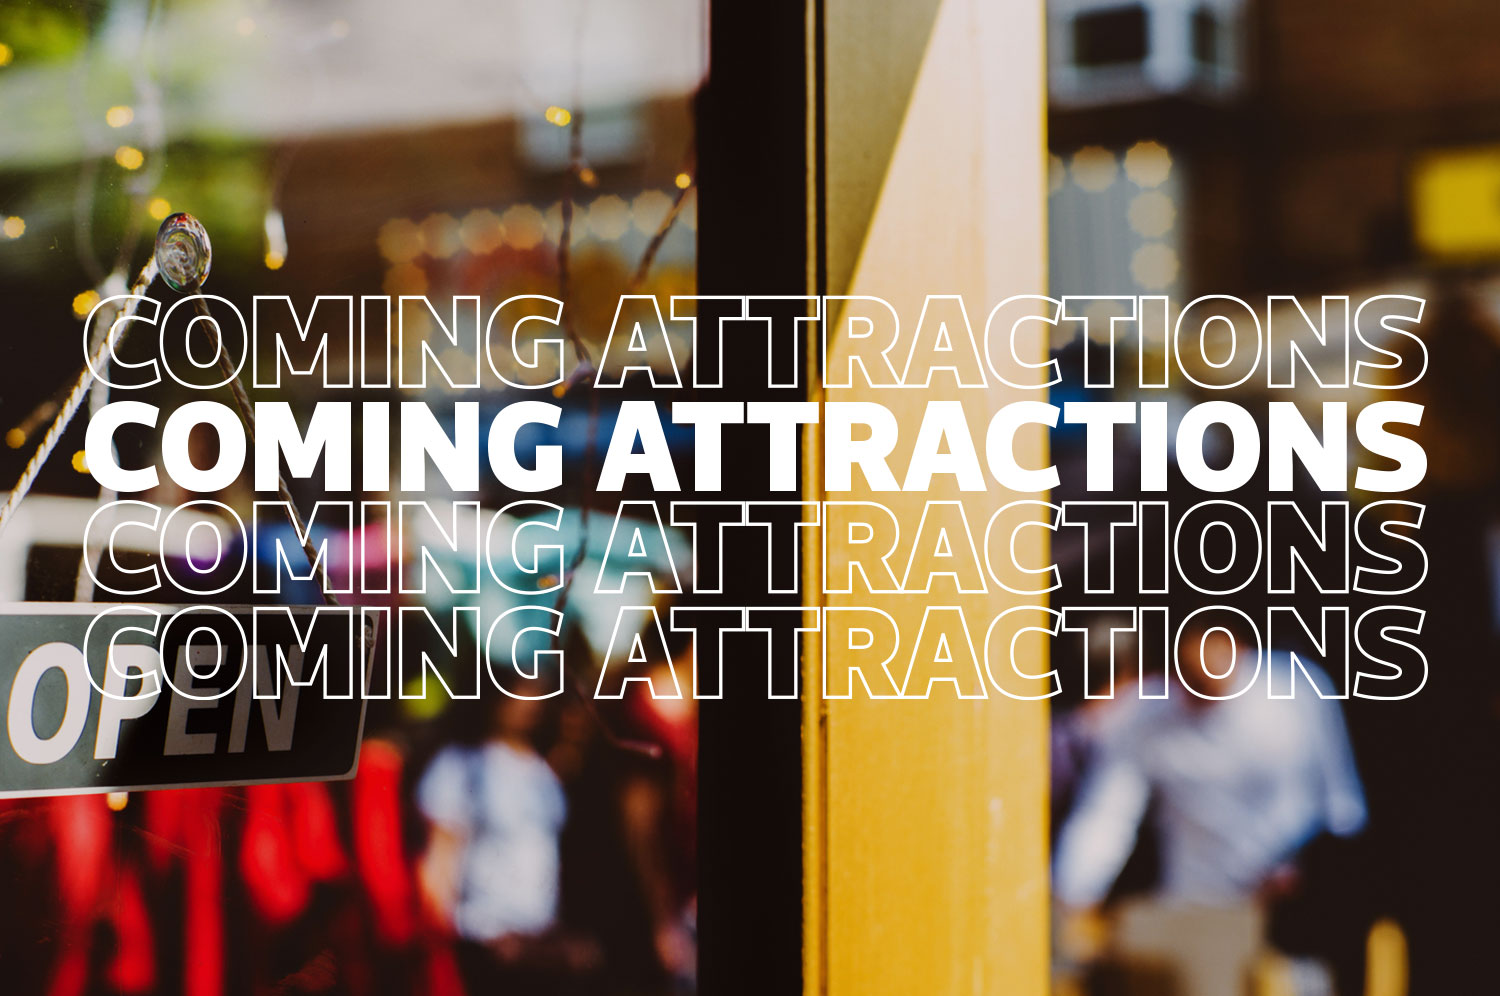 A Coming Attractions graphic